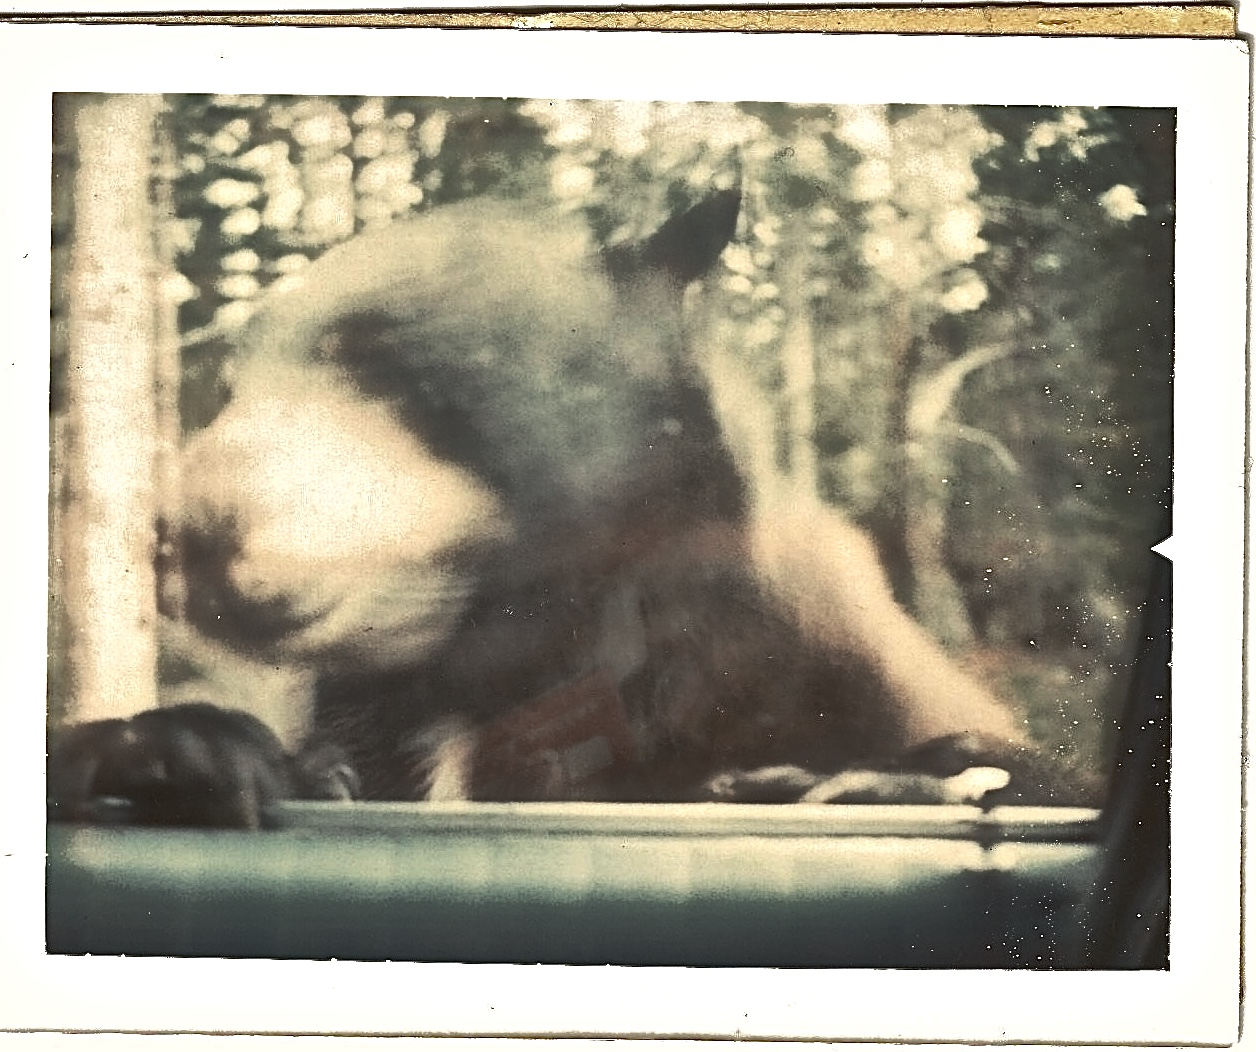 Look closely. You can see the bear's claws inside the car, and the reflection of an empty box of cookies...